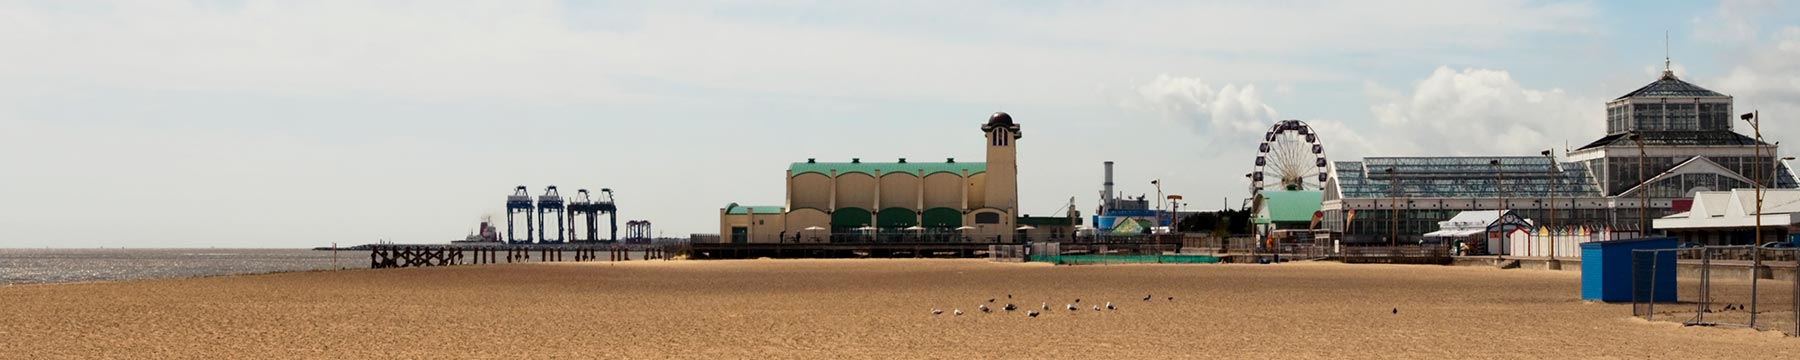 The beach at Great Yarmouth